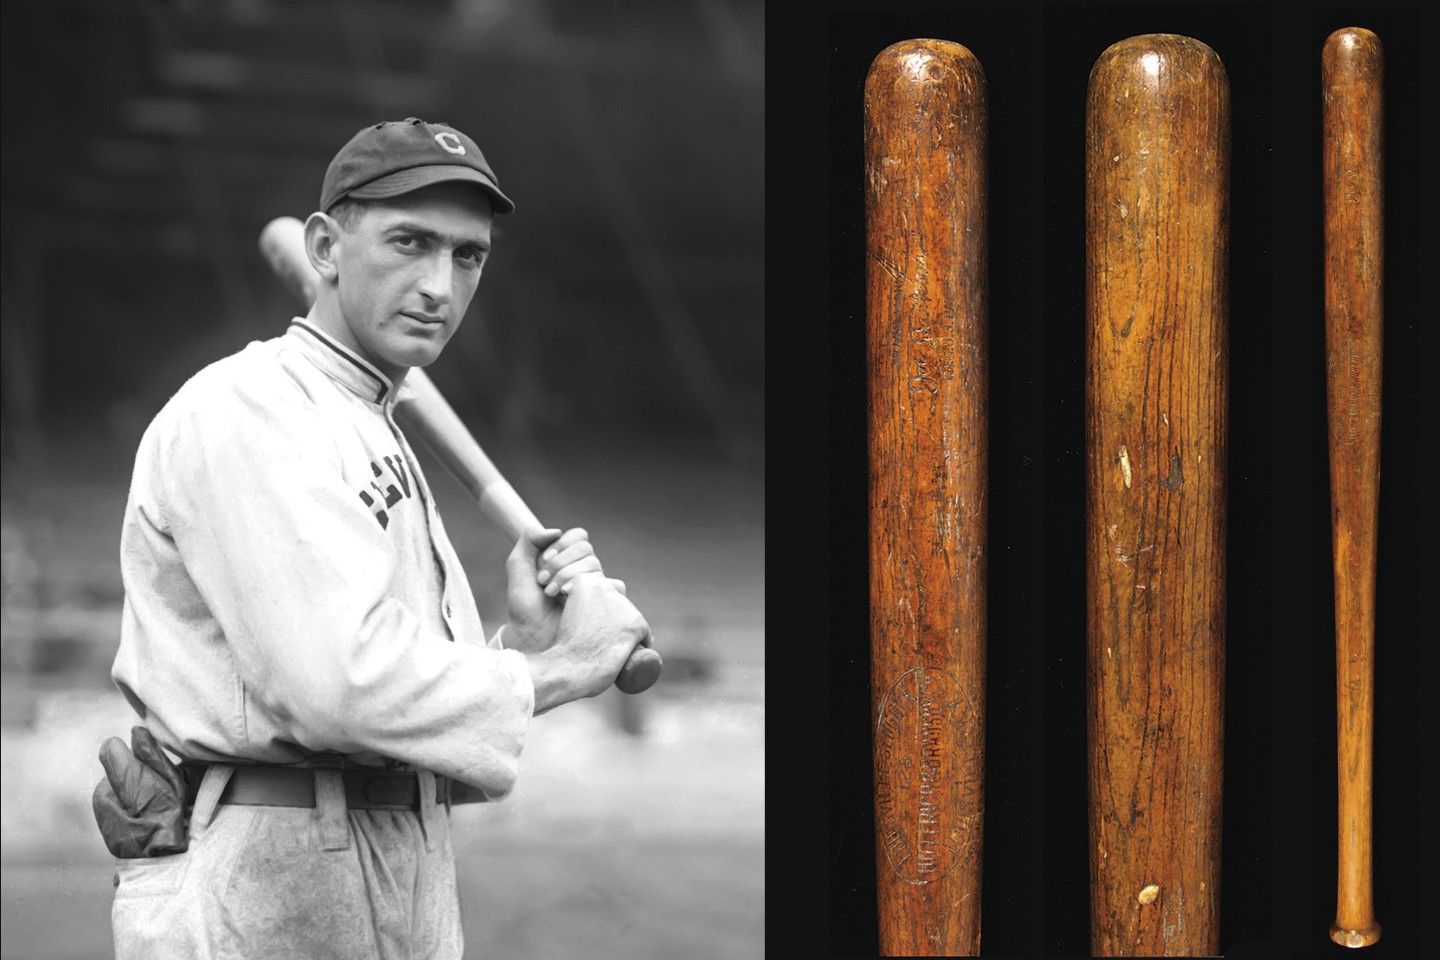 Joe Jackson c1919-20 Baseball Bat | Auction House: Hunt Auctions | Price fetched: $605,077 | Auctioned: February 2015